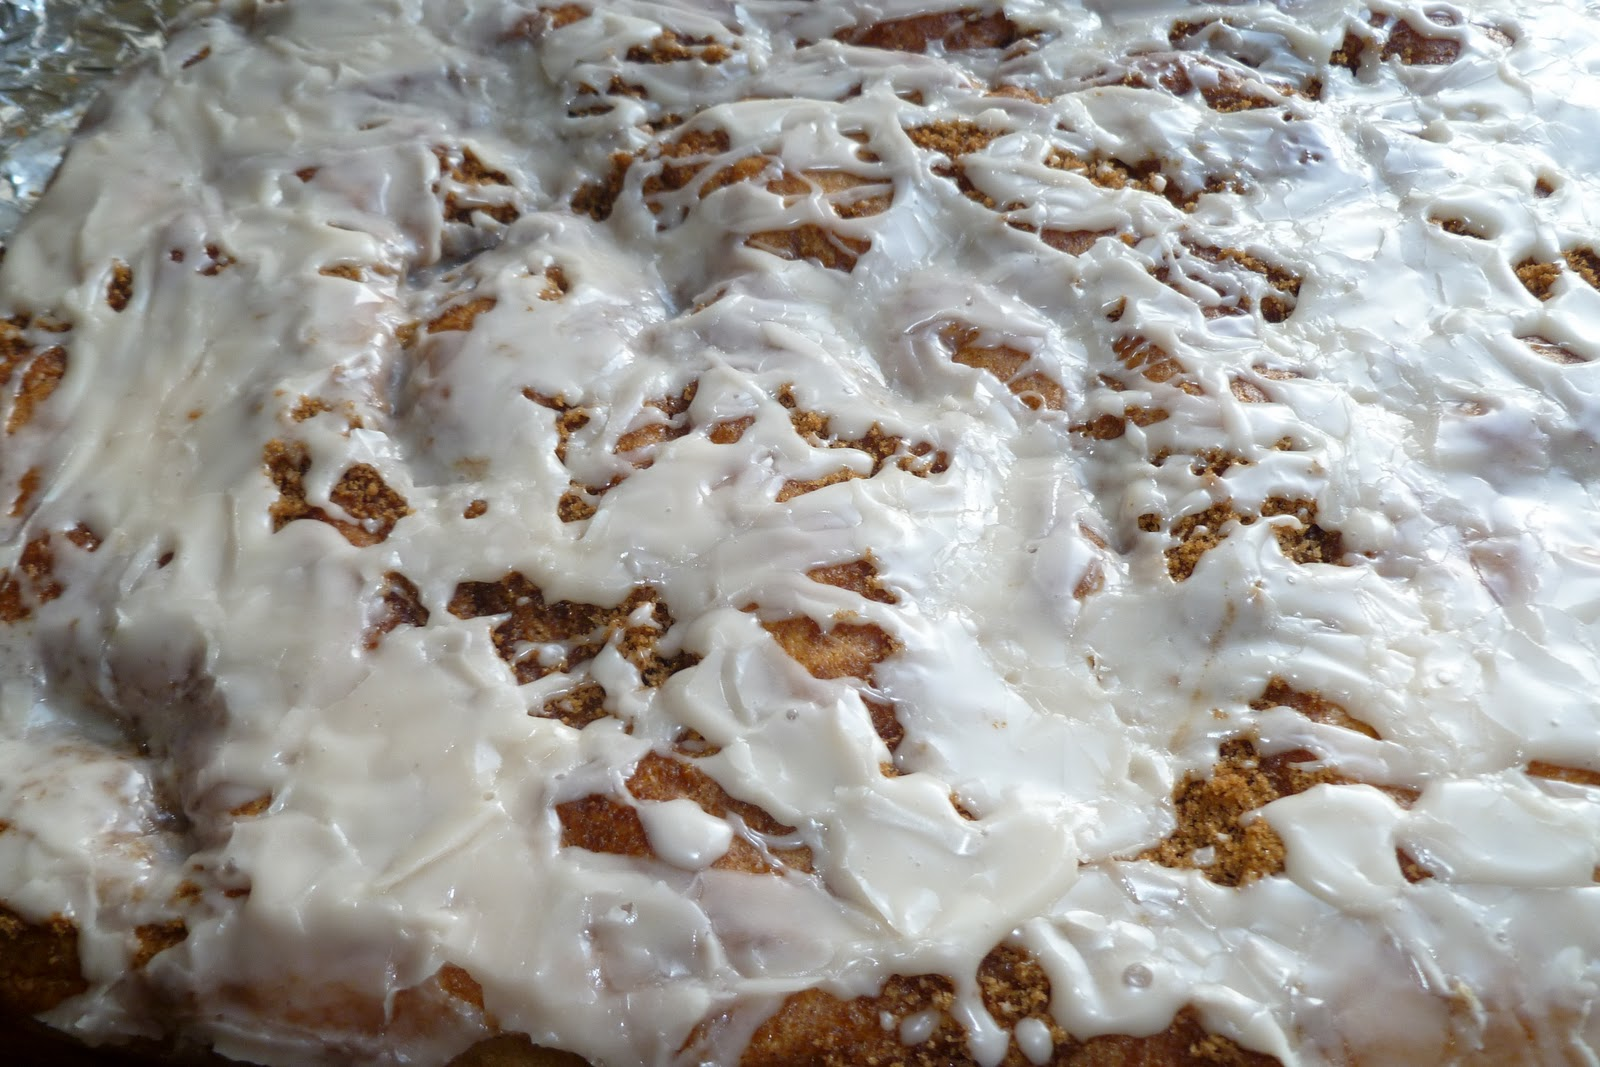 Honey bun cake recipe using cake mix